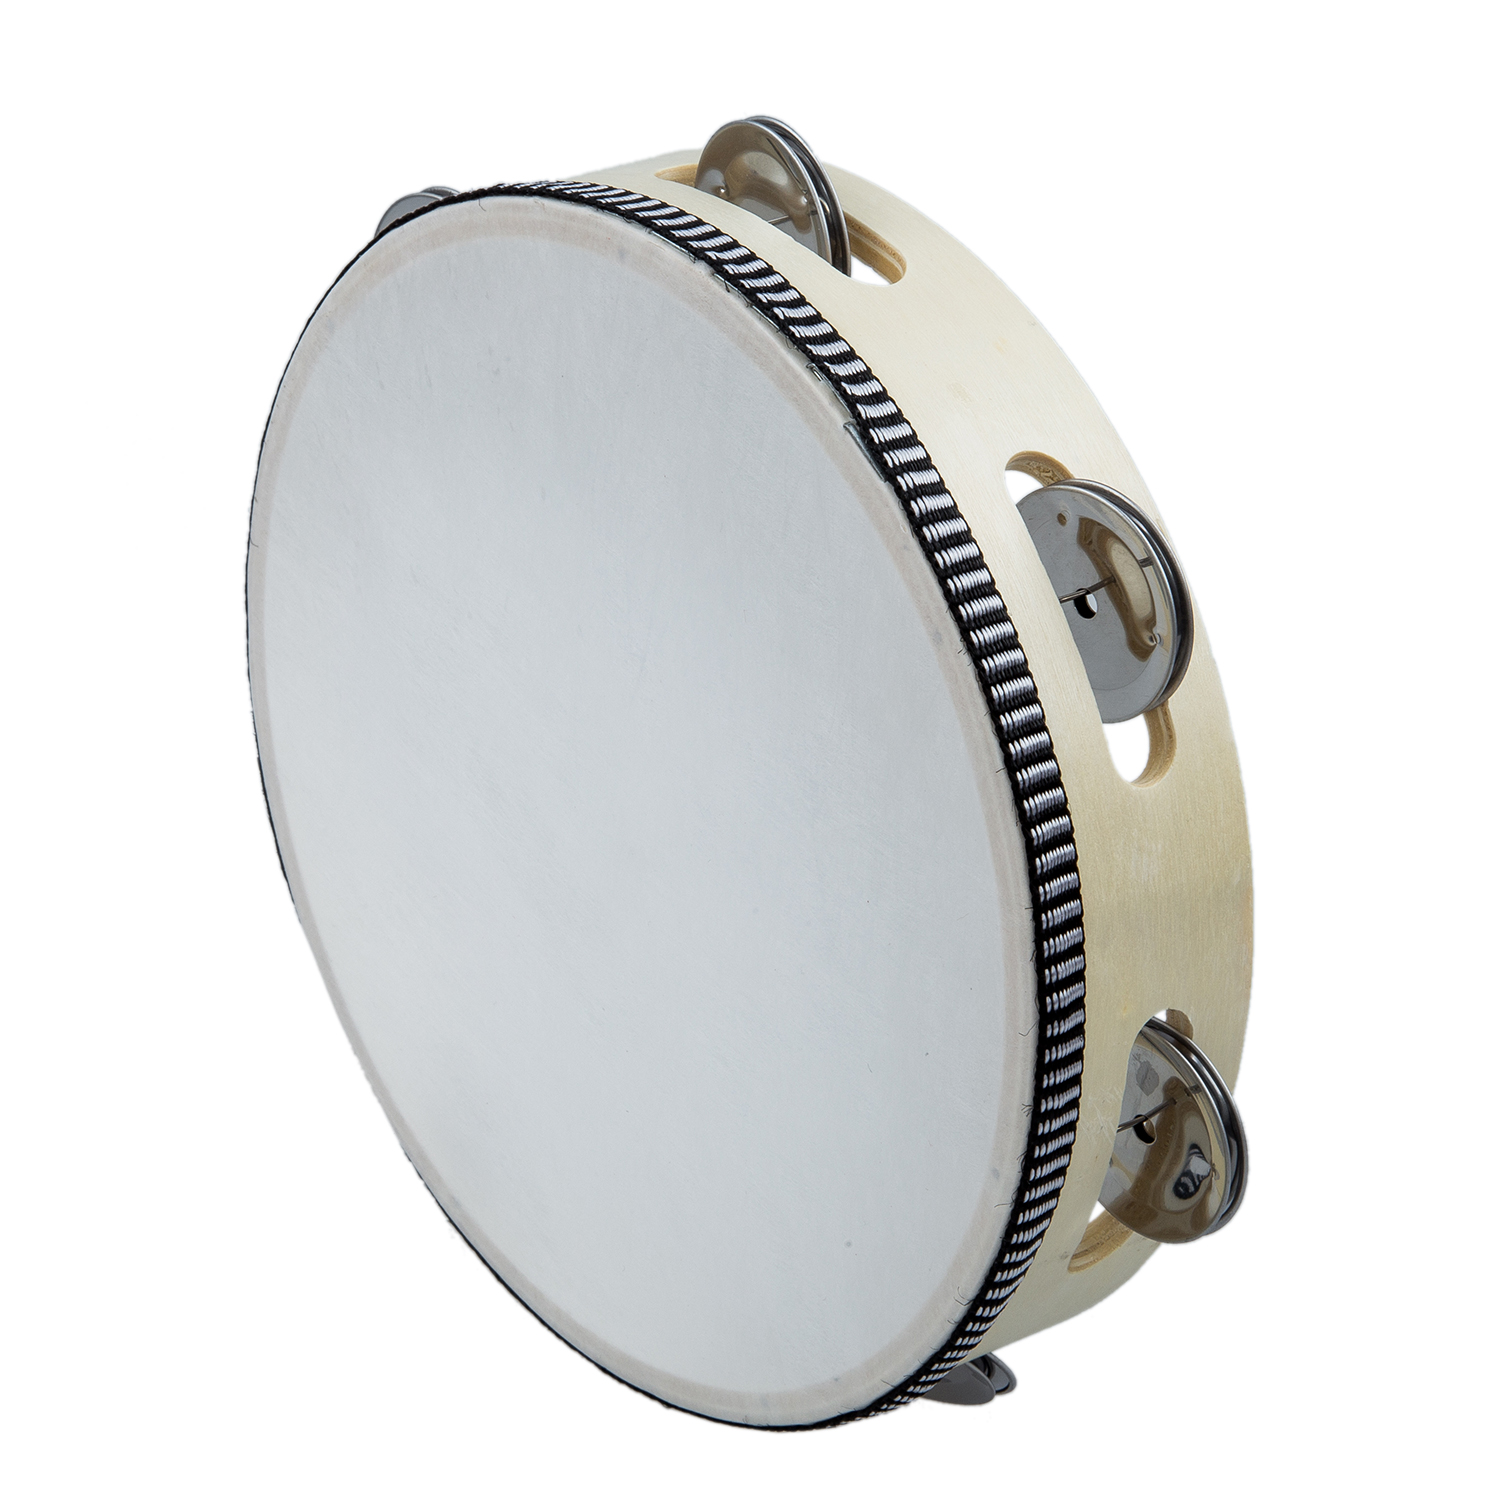 8 Musical Tambourine Drum Round Percussion Gift for KTV Party